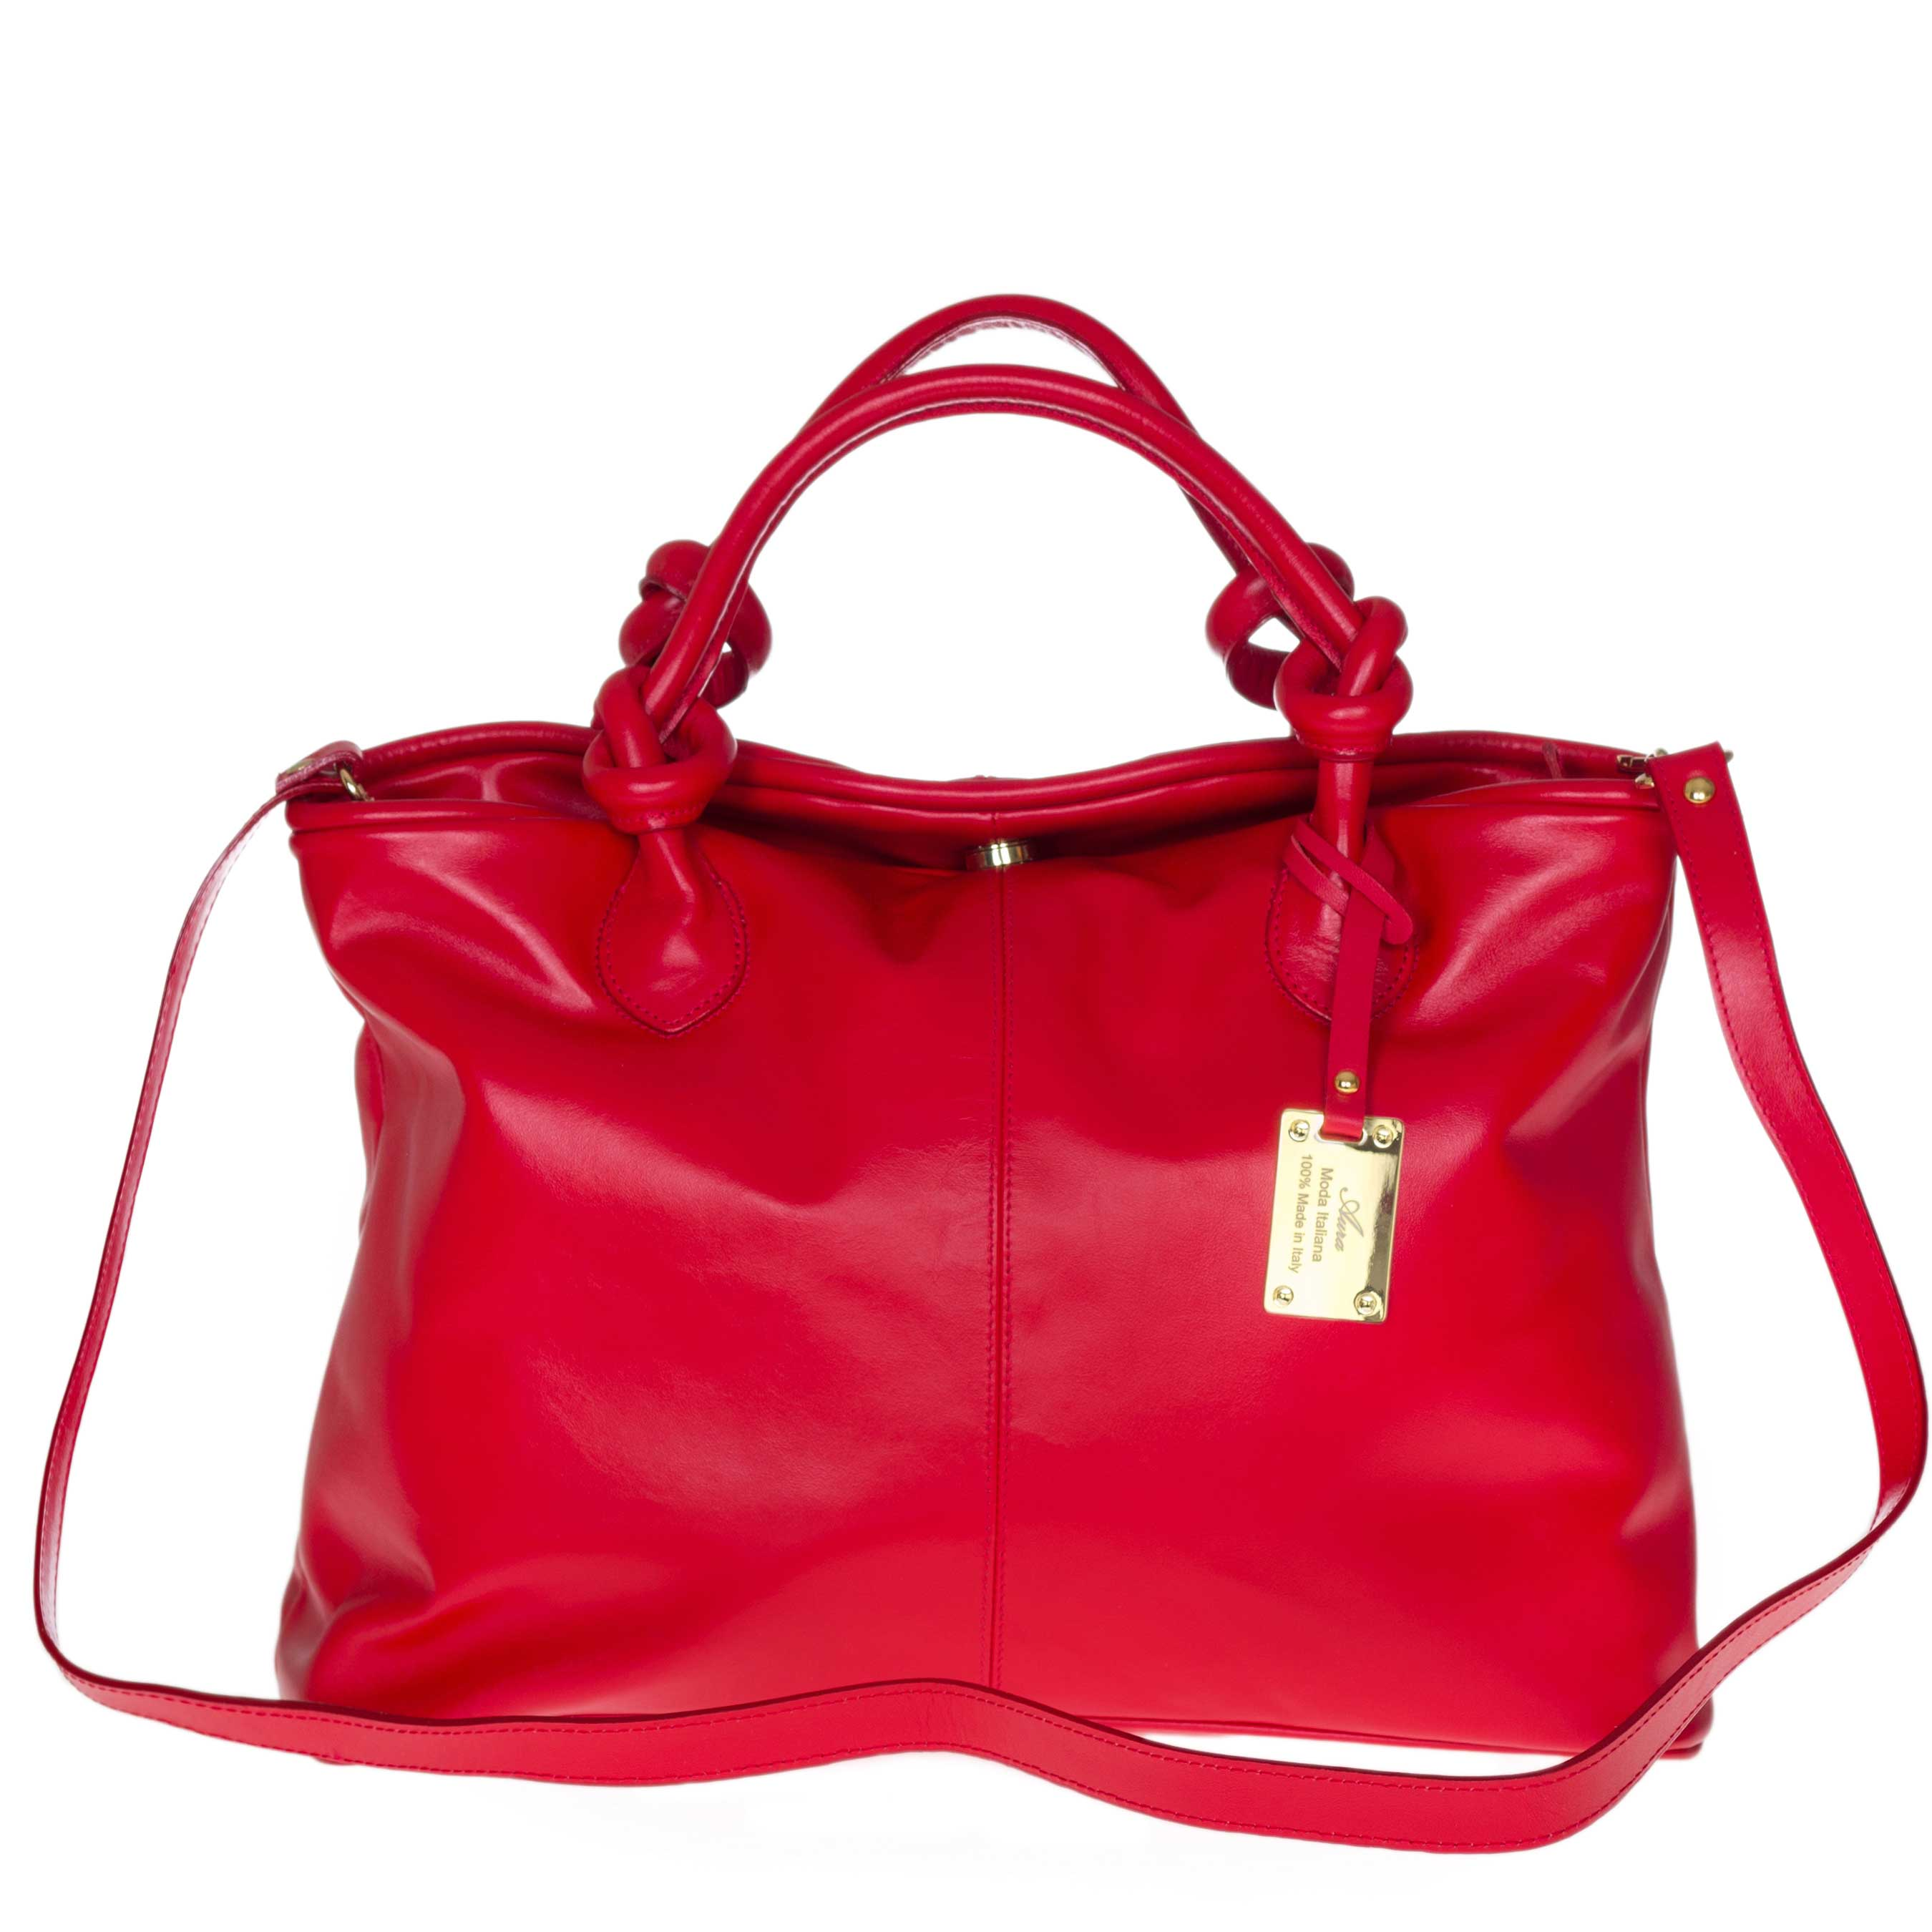 AURA Italian Made Red Leather Medium Tote Bag